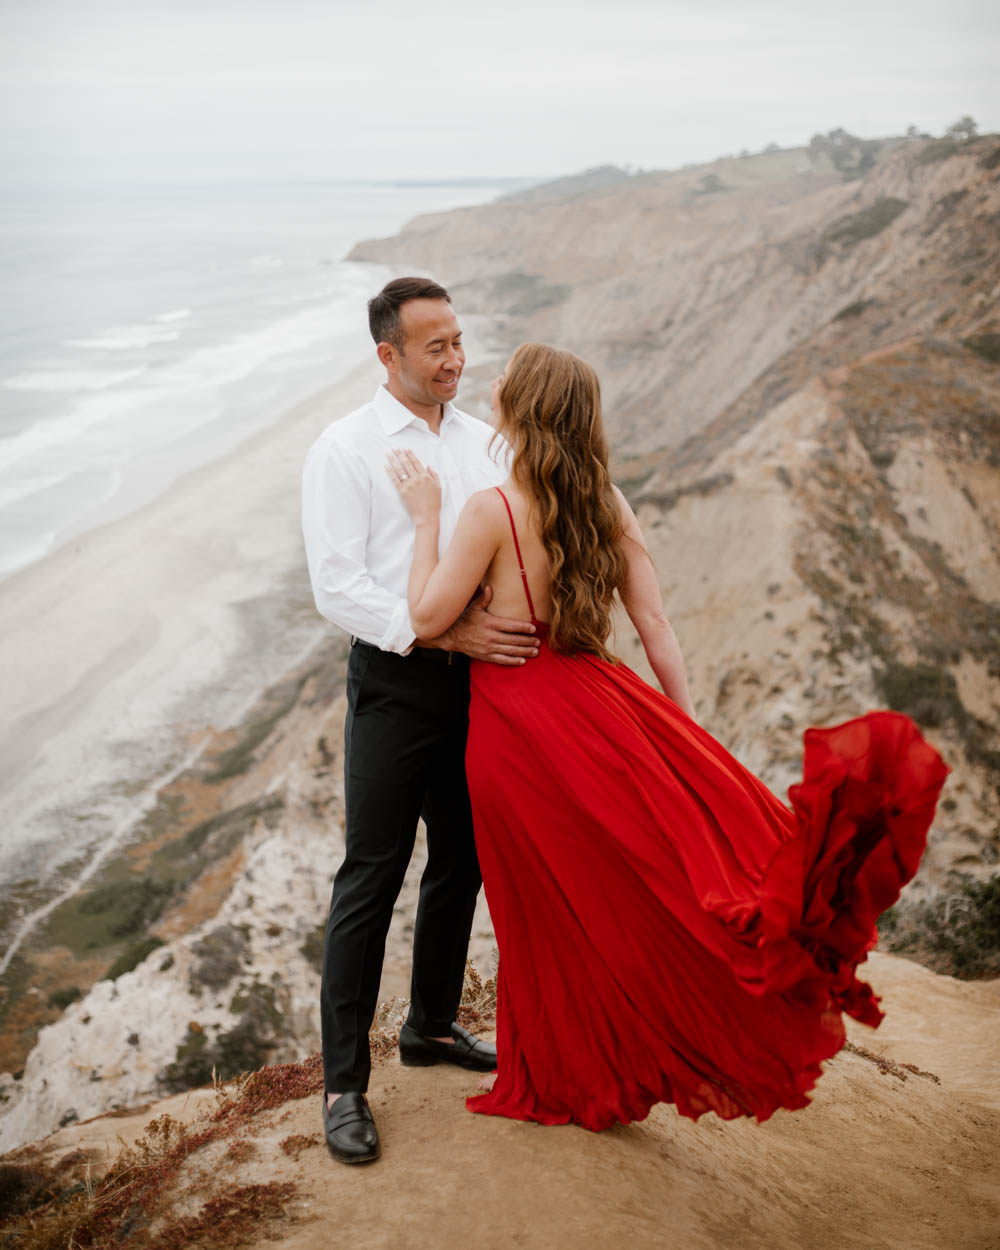 California top 33 epic engagement photography locations blacks beach la jolla flipping dress